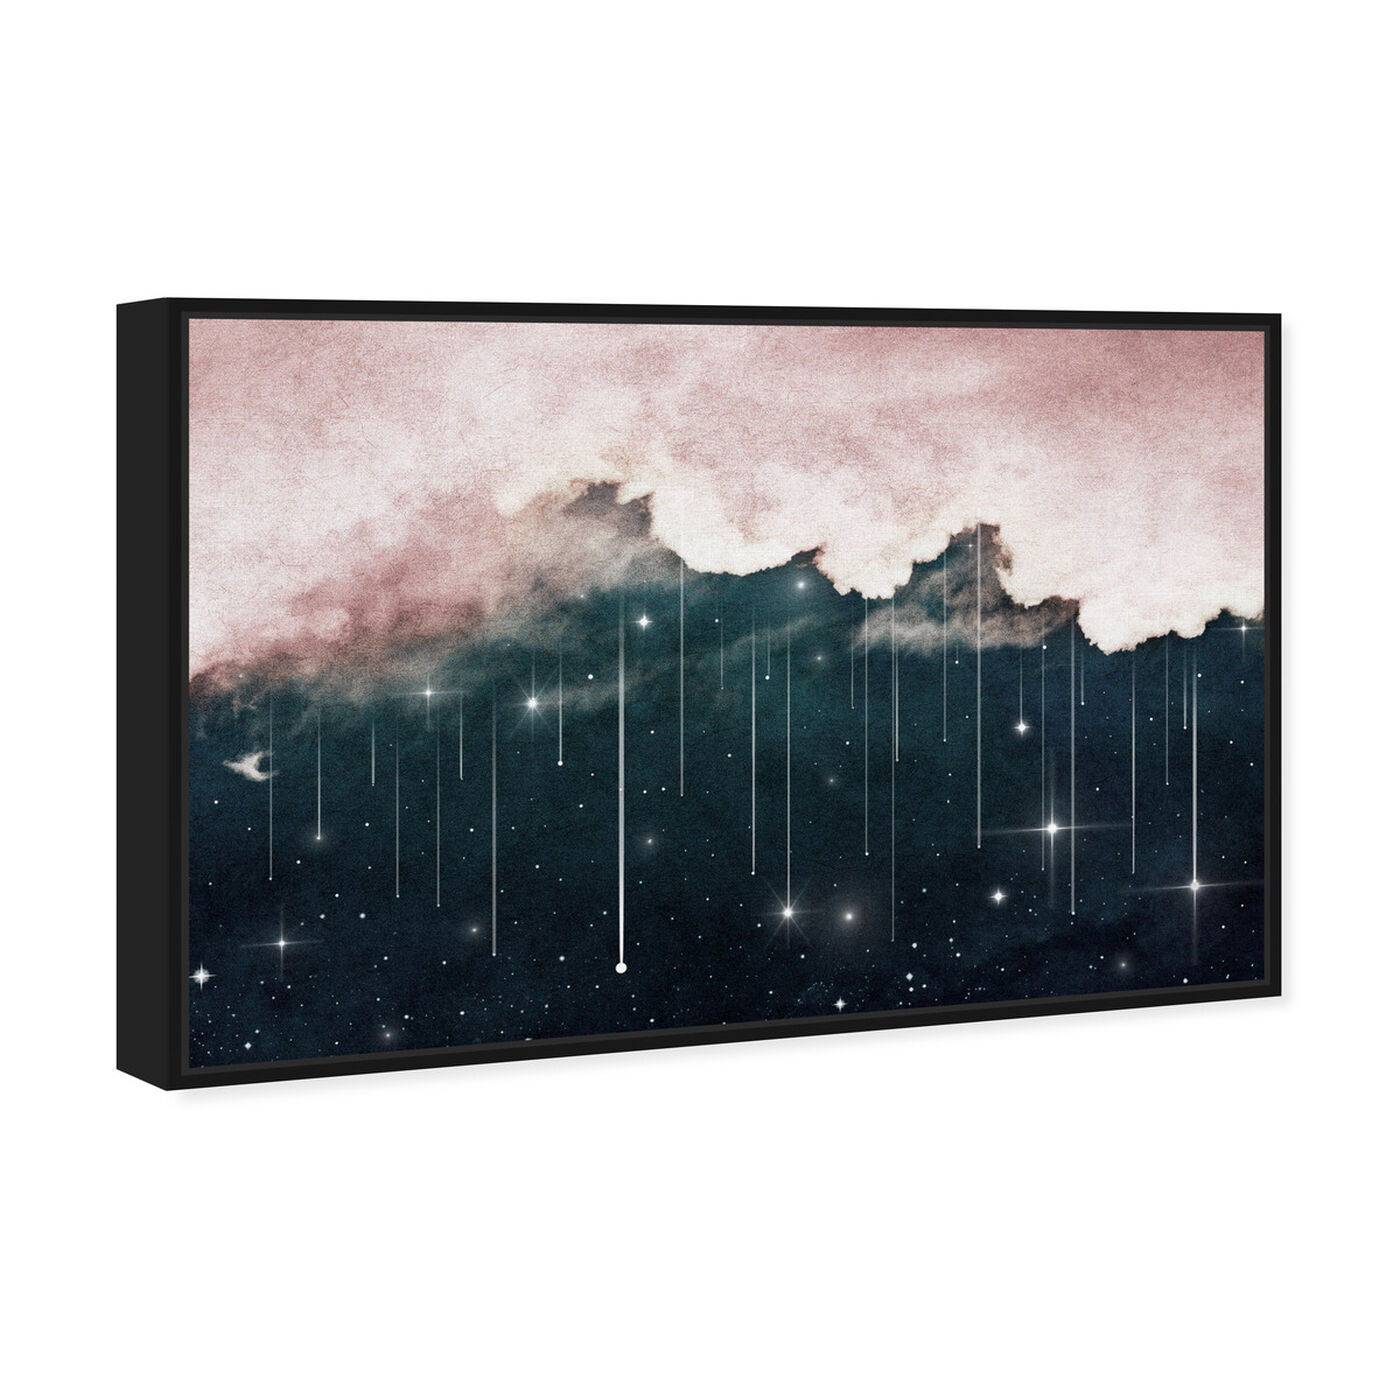 Angled view of Starry Eyes Starry Night featuring nature and landscape and skyscapes art.